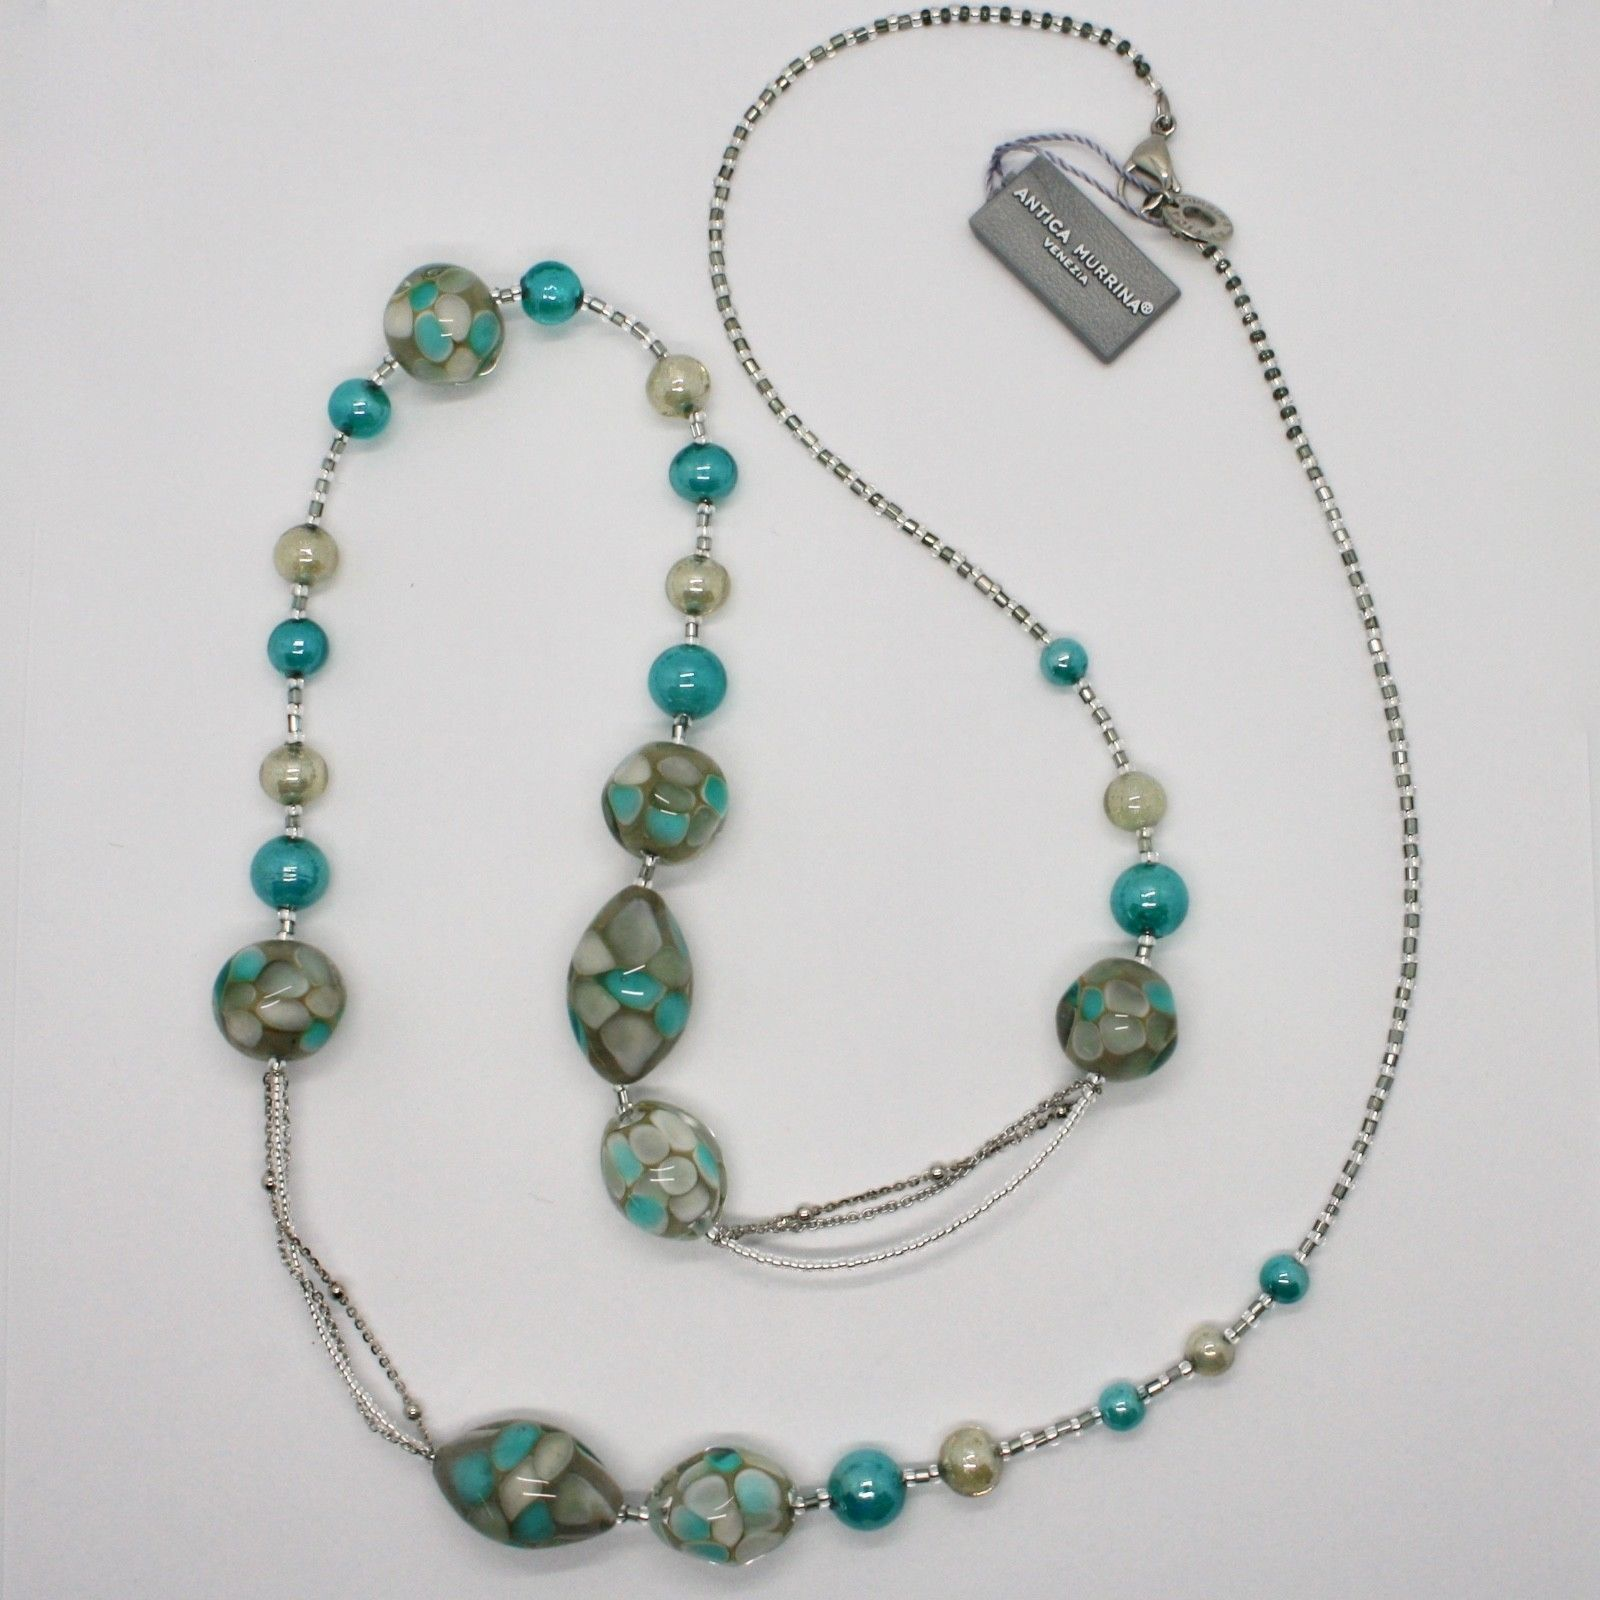 ANTICA MURRINA VENEZIA NECKLACE WITH MURANO GLASS BEIGE GREEN TURQUOISE COA09A59